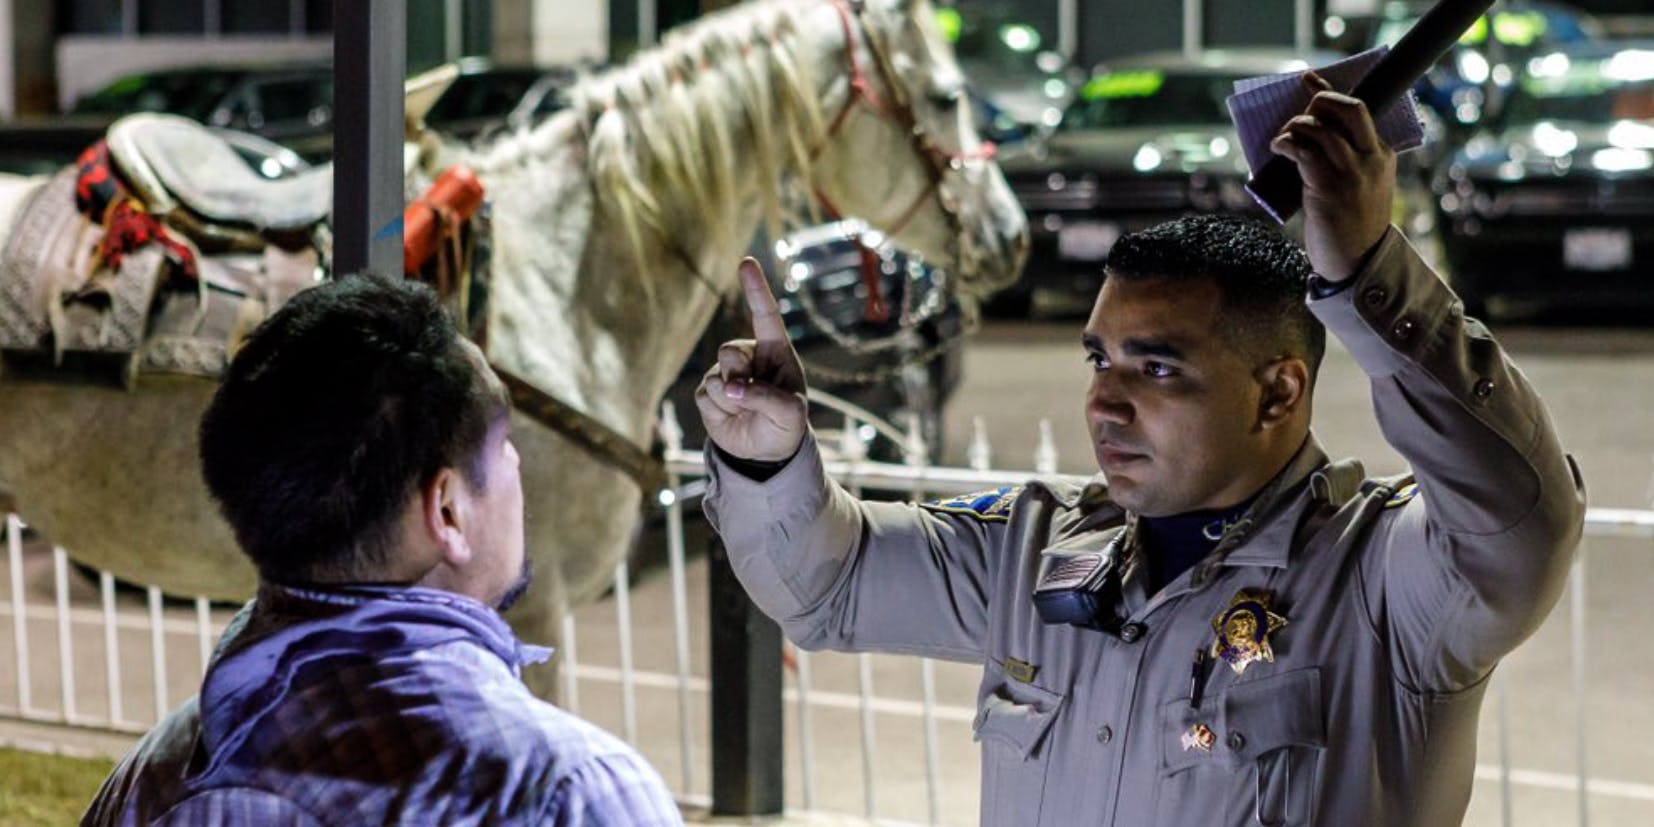 Man Gets A DUI For Drunkenly Riding His Horse On The Freeway